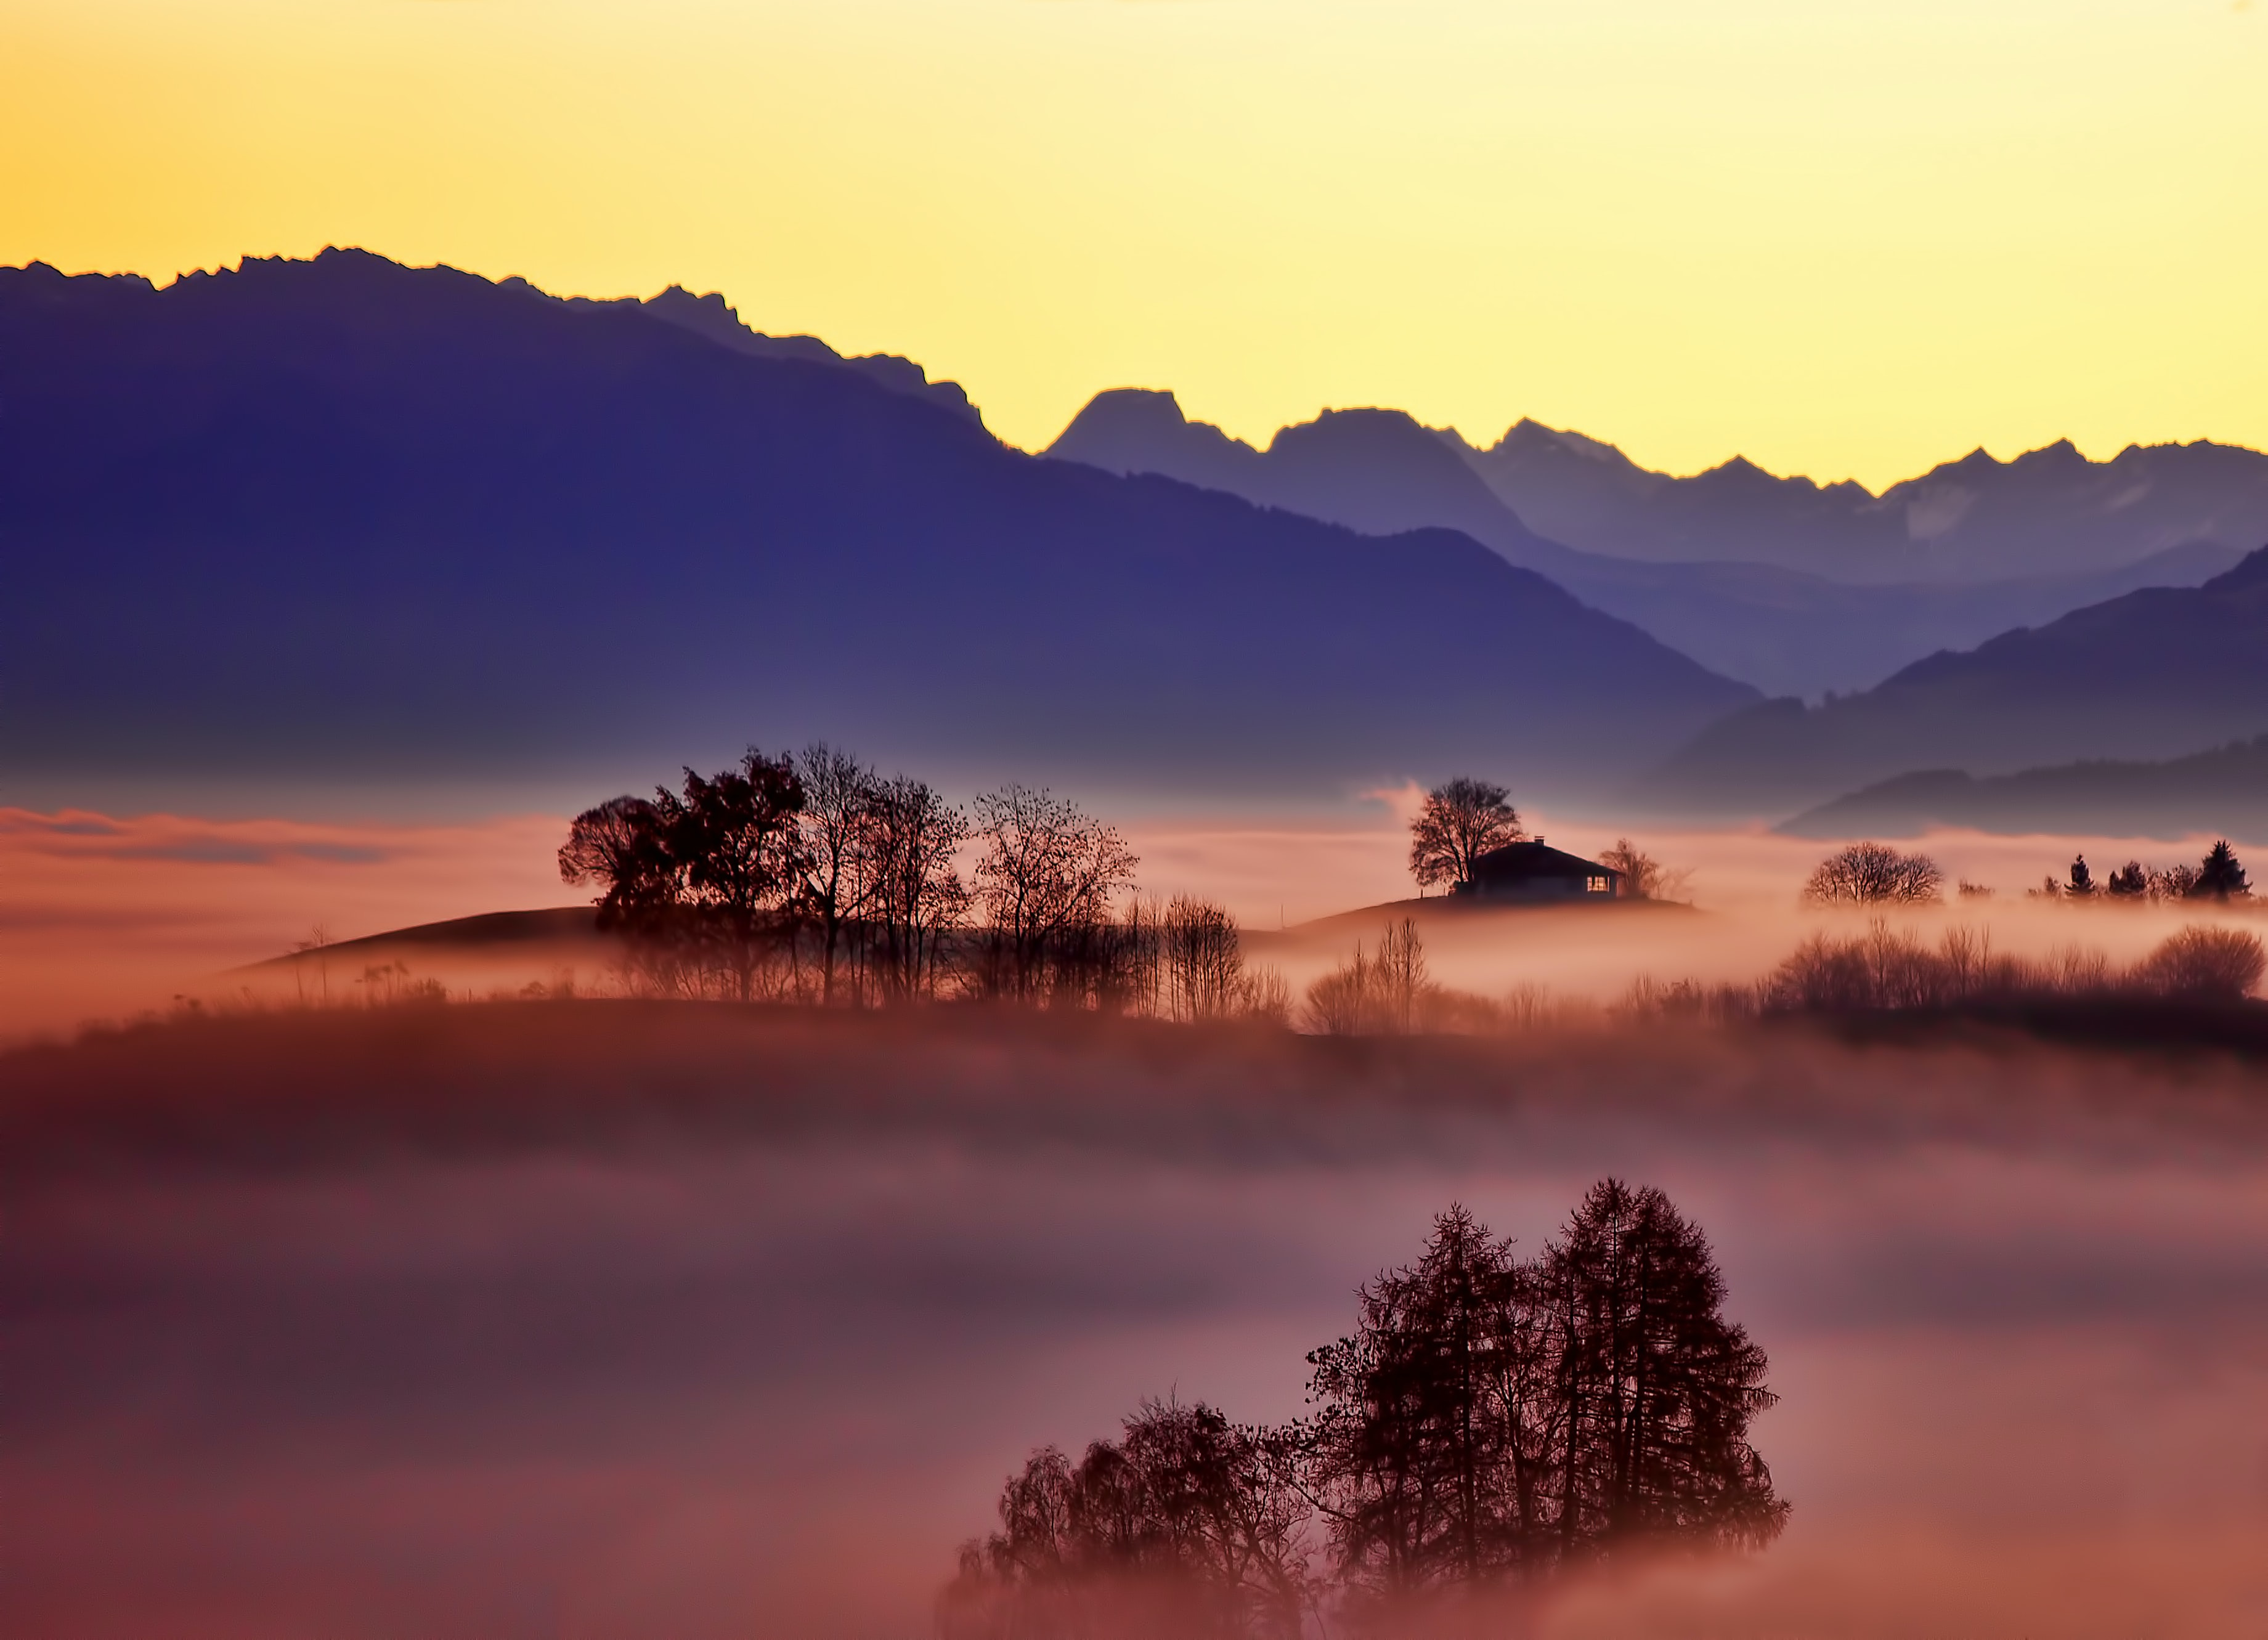 Colorful mountain scene covered in mist during the sunrise